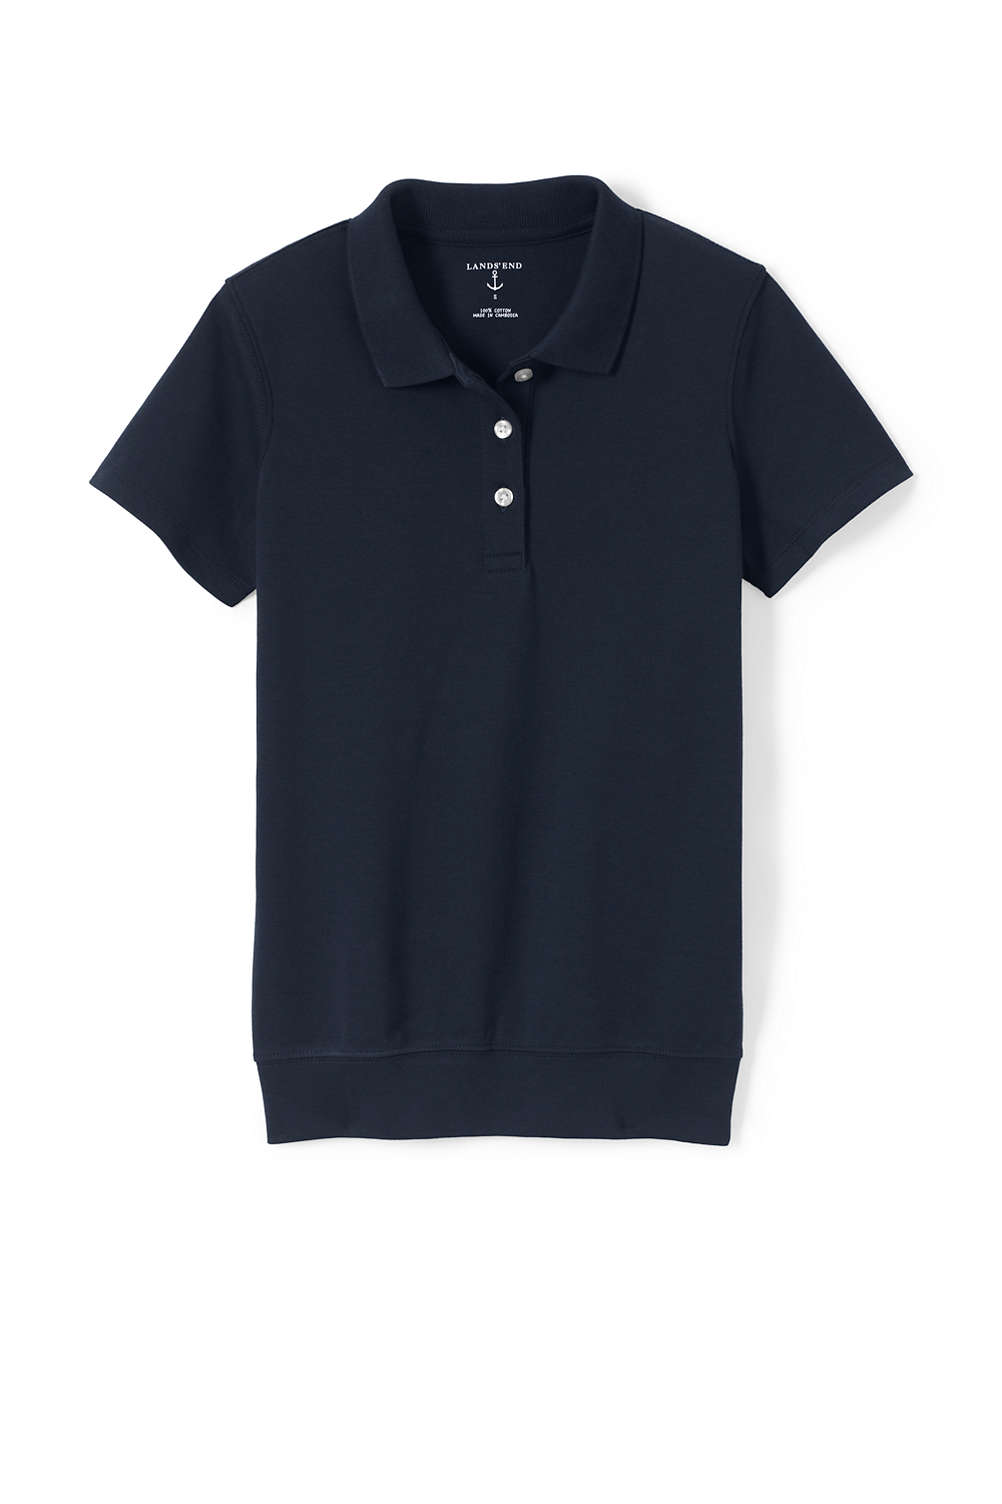 School Uniform Short Sleeve Banded Bottom Polo From Lands End